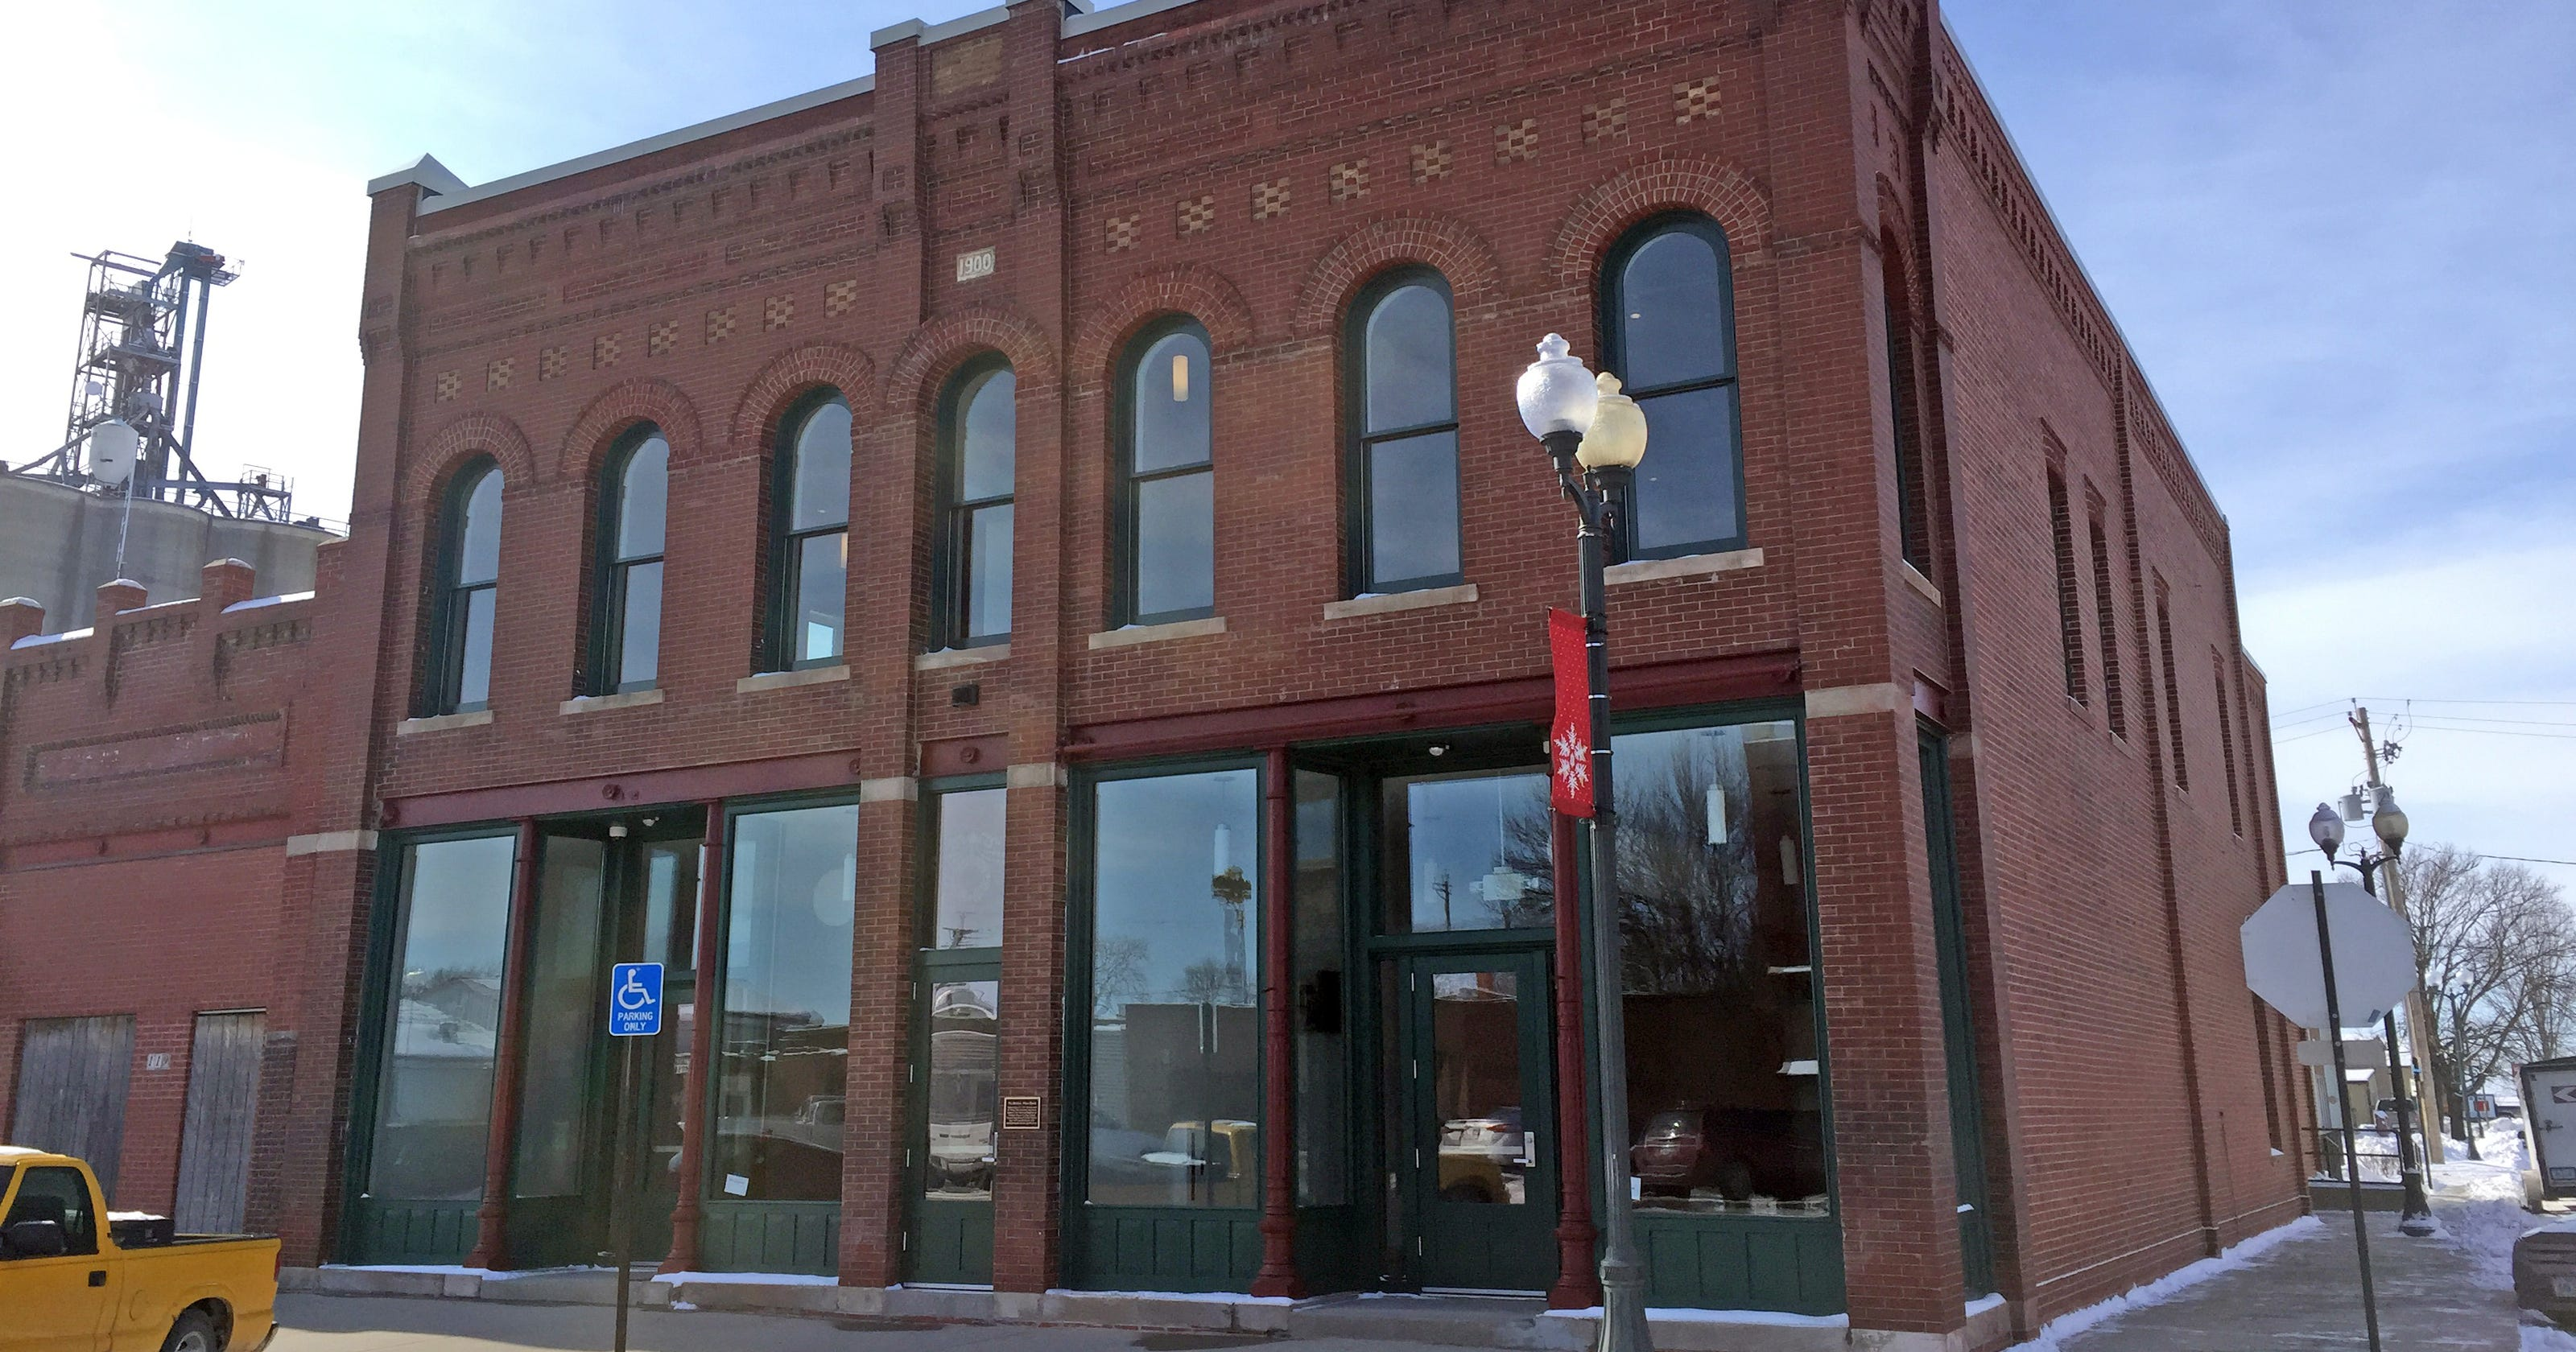 Small towns new crown jewel is ready to lure the city to rural iowa